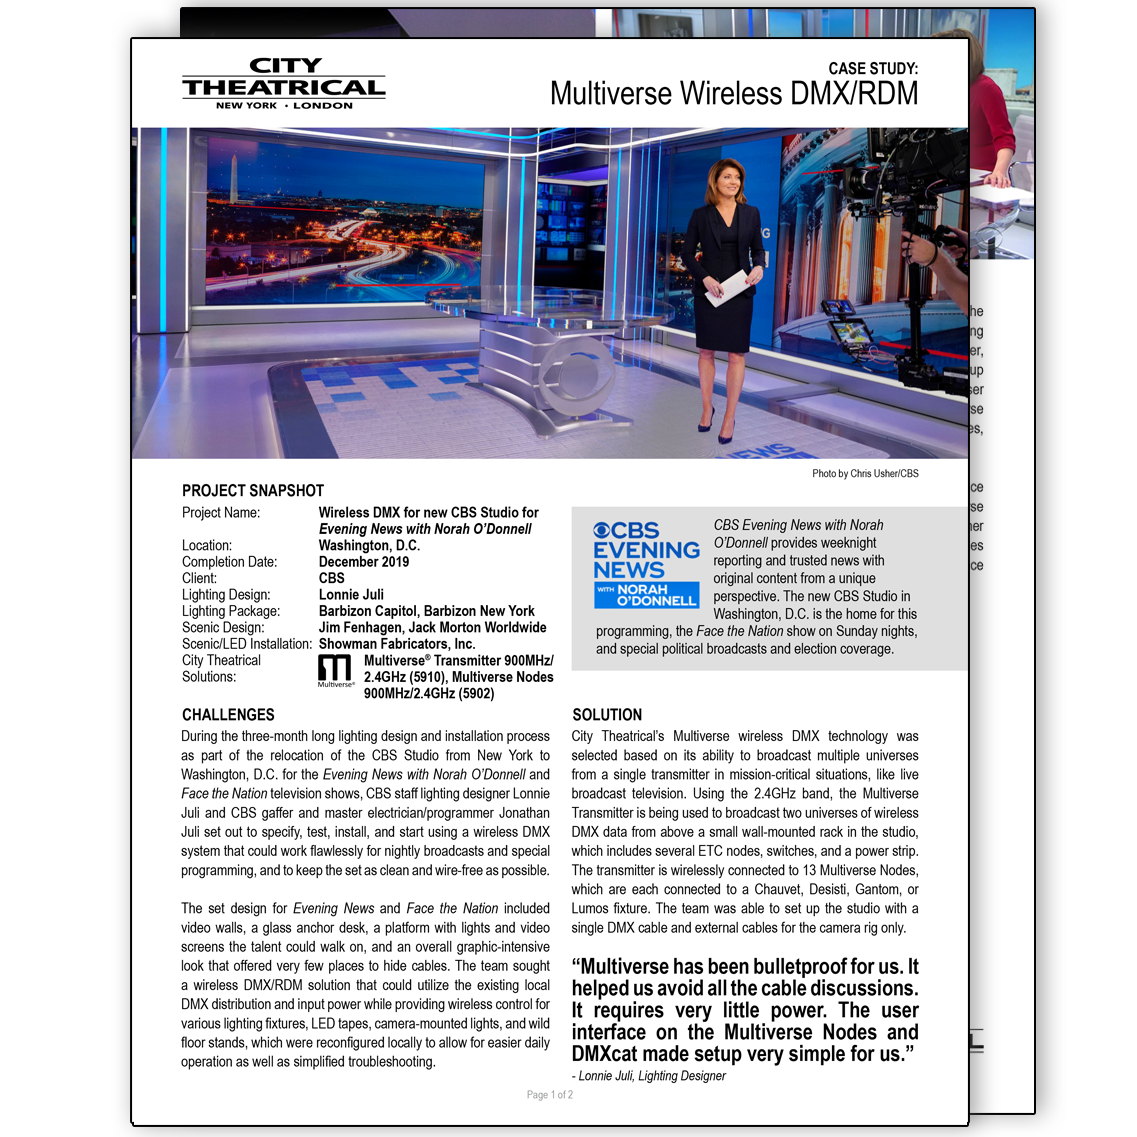 City Theatrical Case Study: Multiverse CBS Evening News with Norah O'Donnell